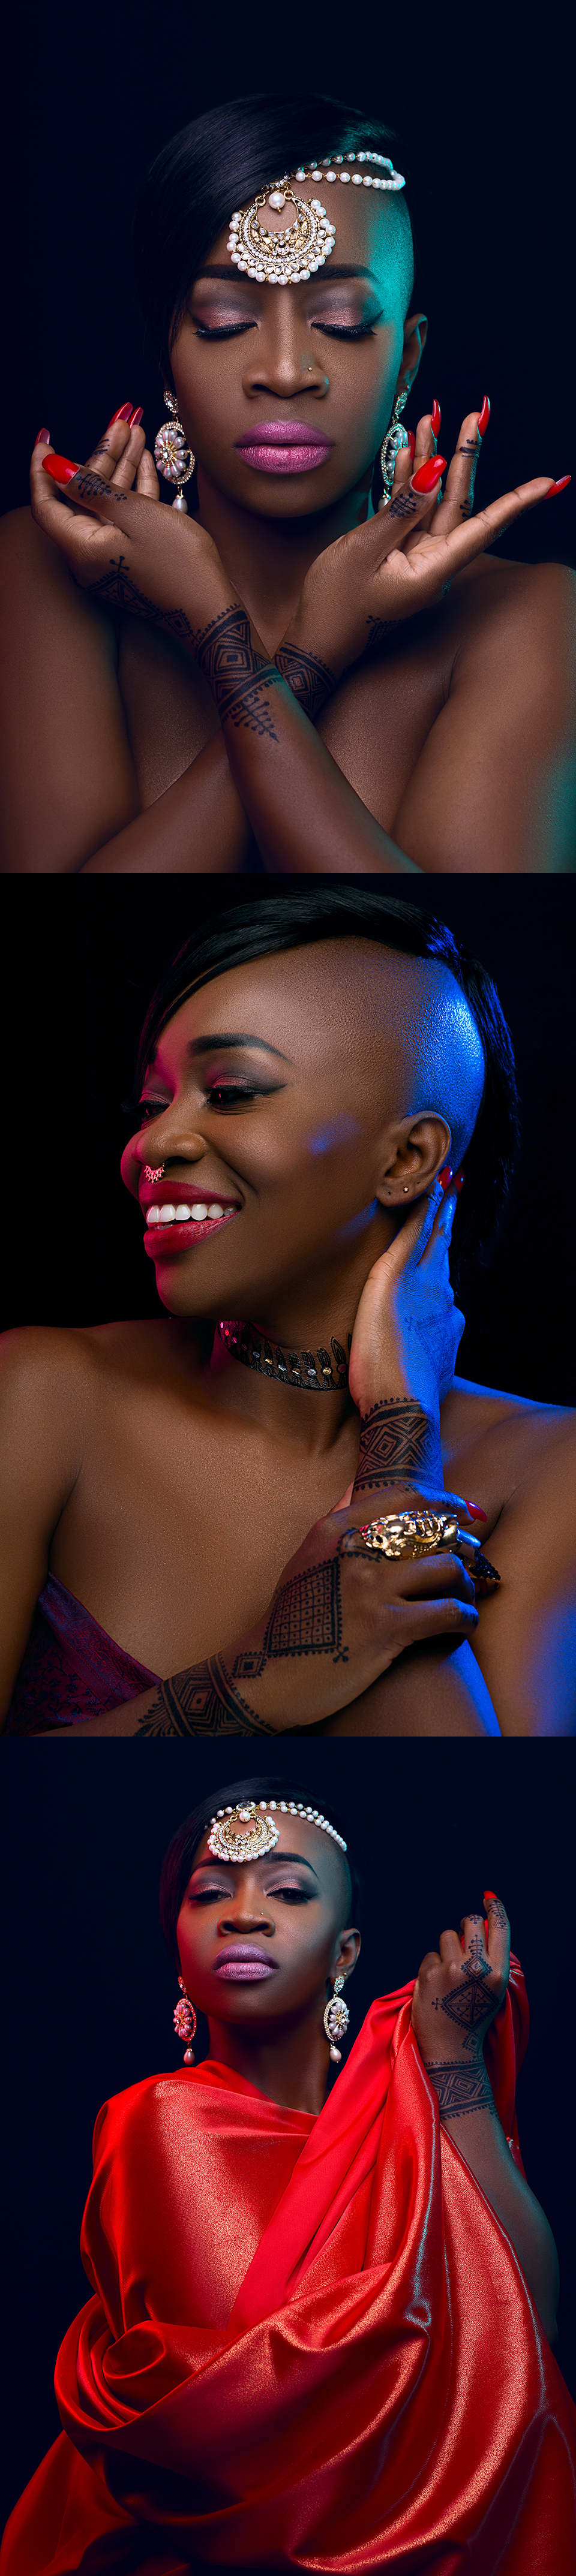 Musician Shaa Exquisitely Exotic Makeup Styles1.4